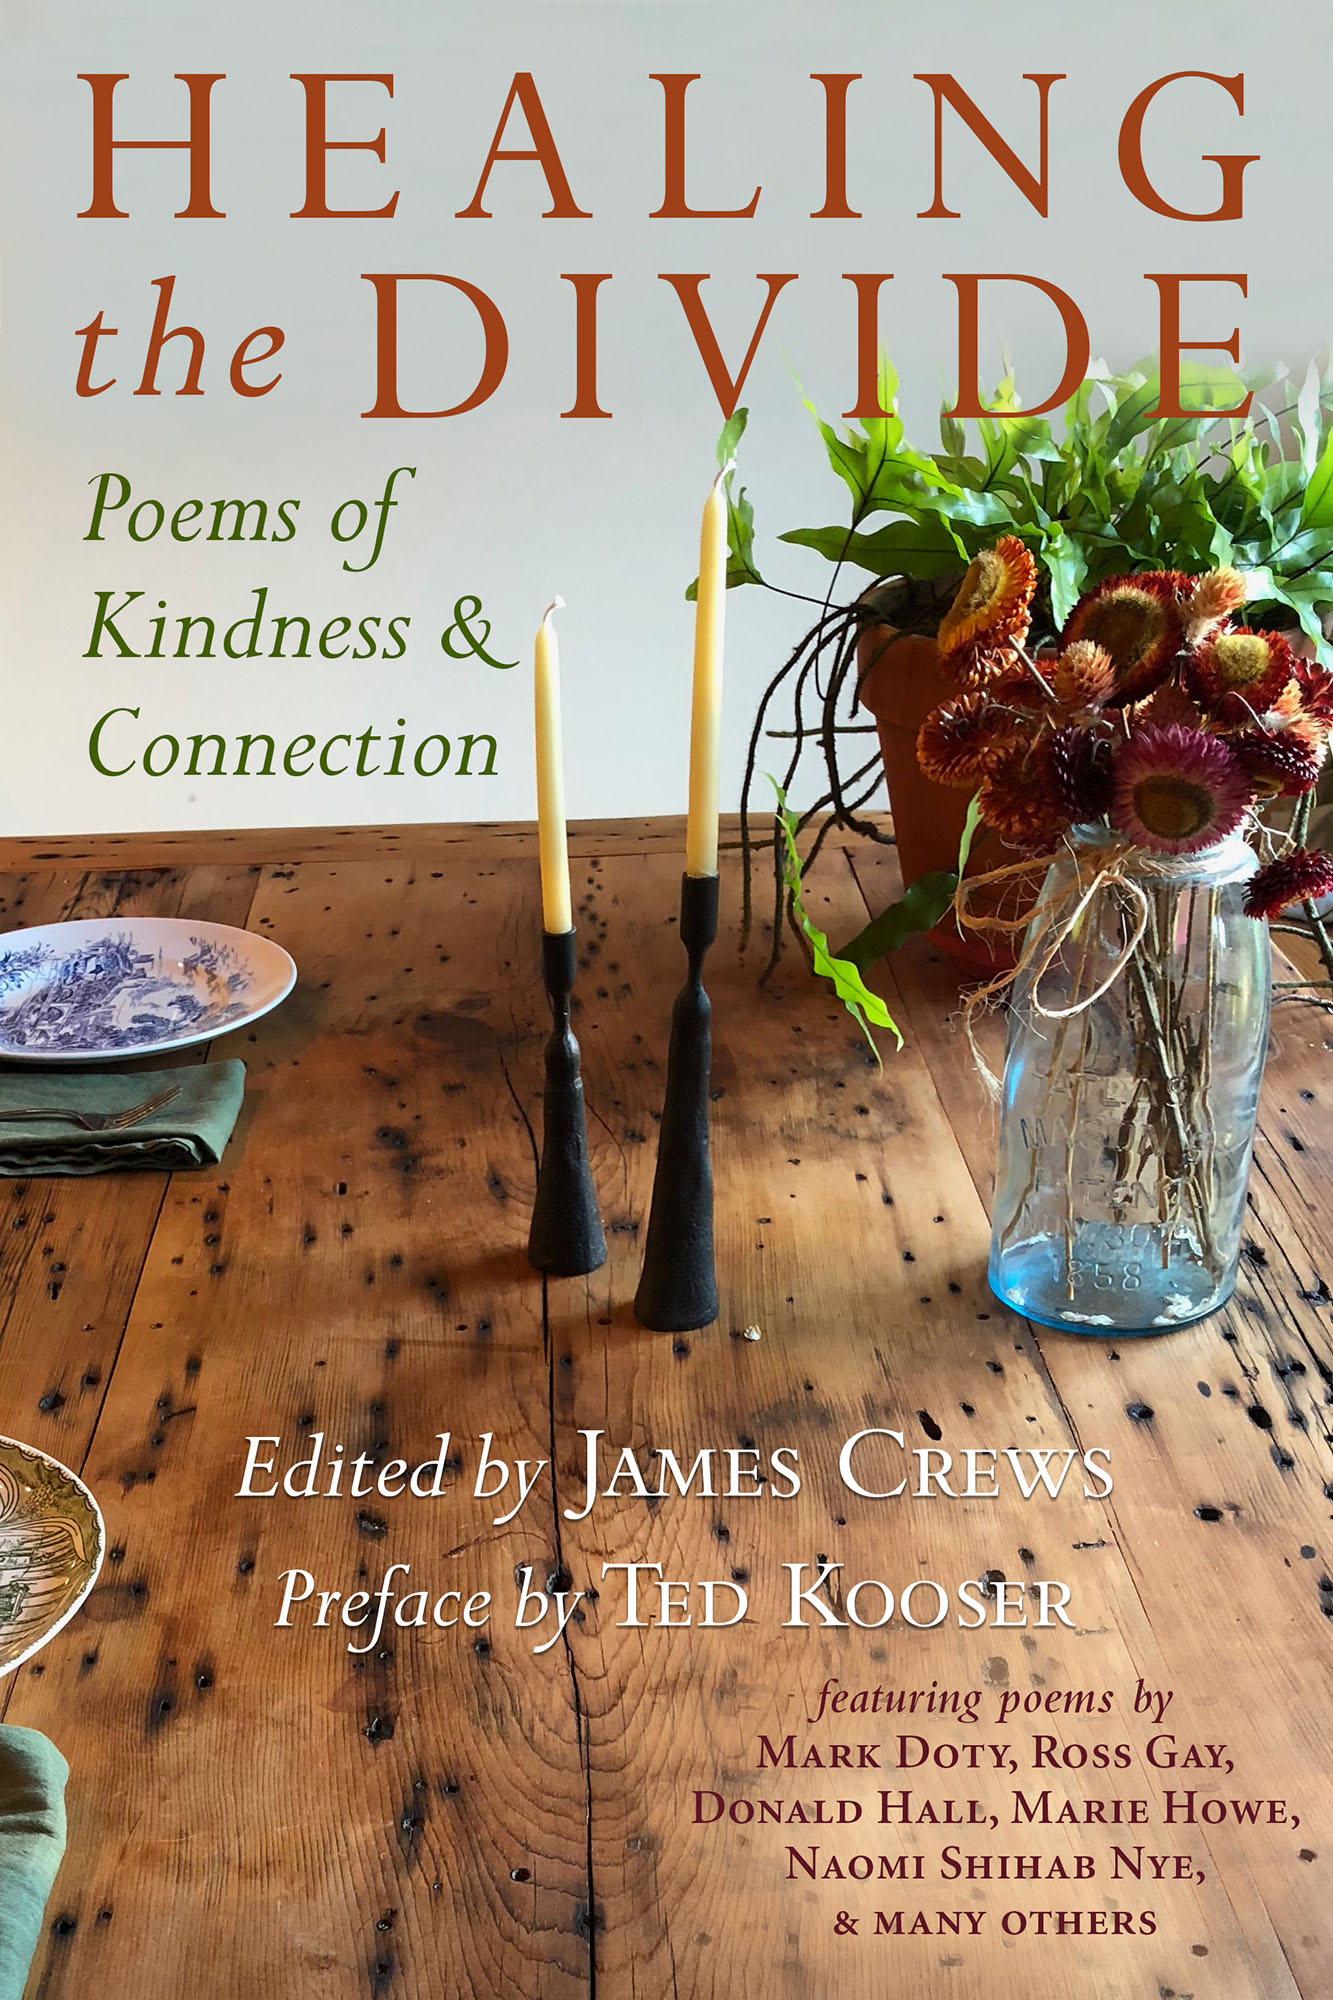 Healing the Divide , edited by James Crews   (Green Writers Press)